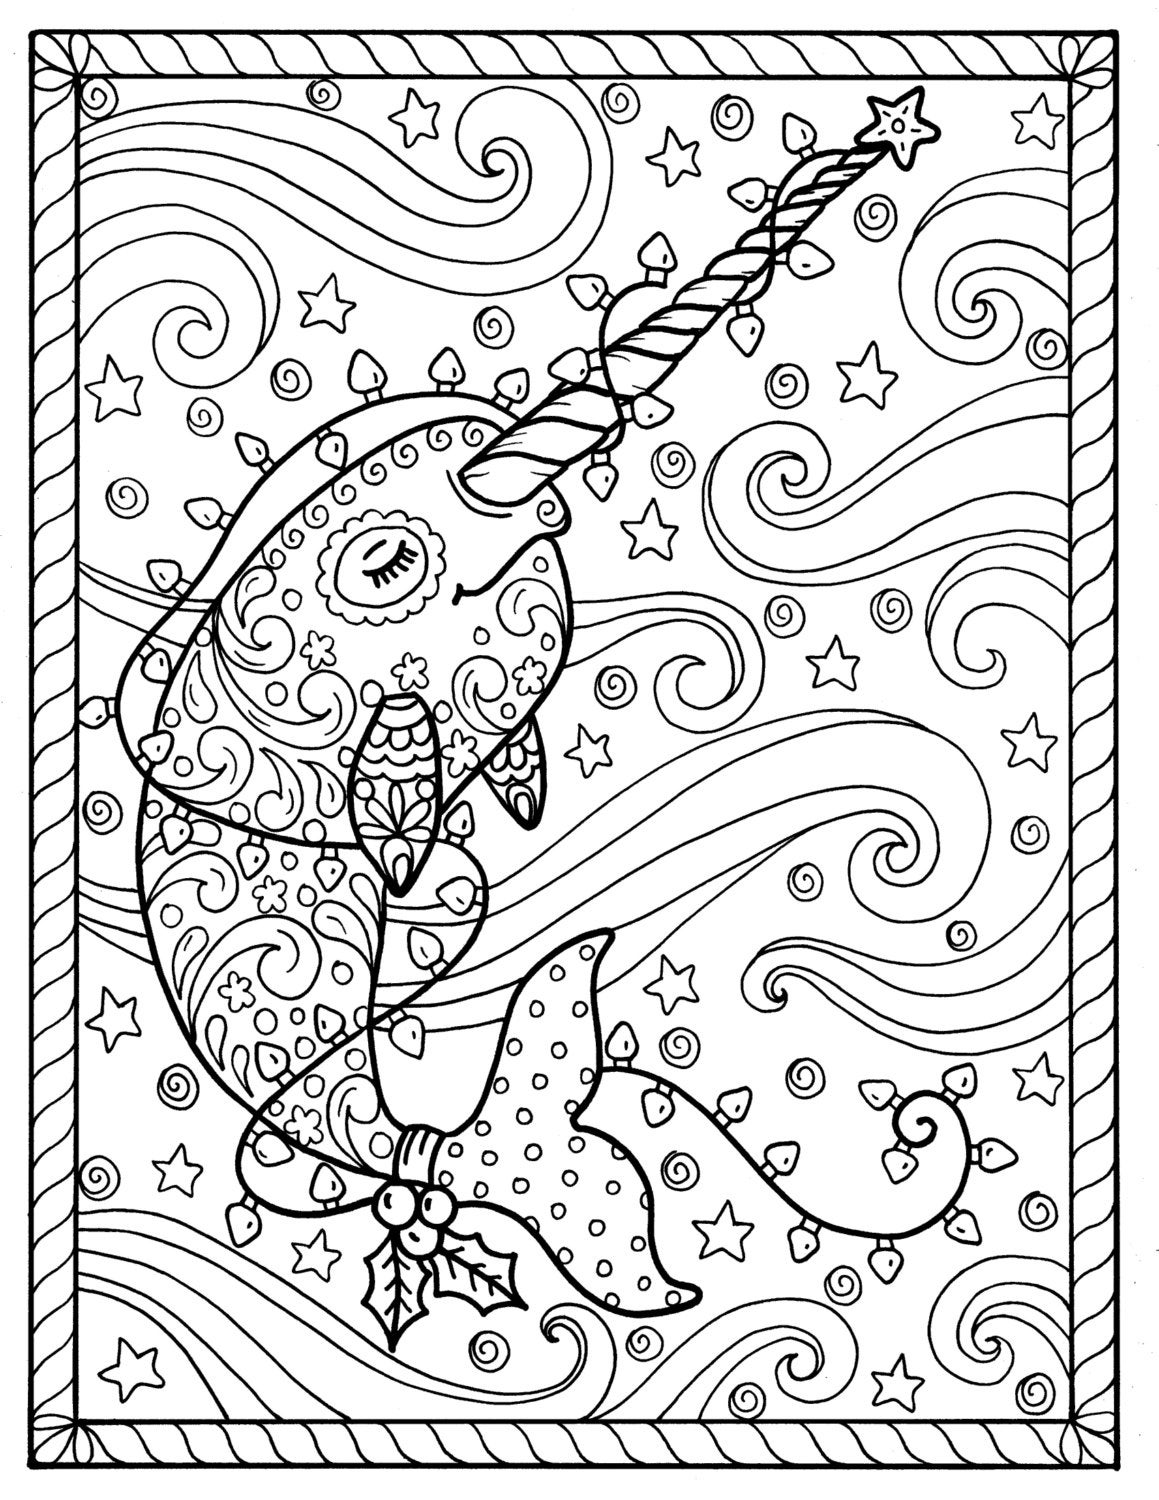 adult christmas coloring pages 5 christian coloring pages for christmas color book digital adult christmas pages coloring